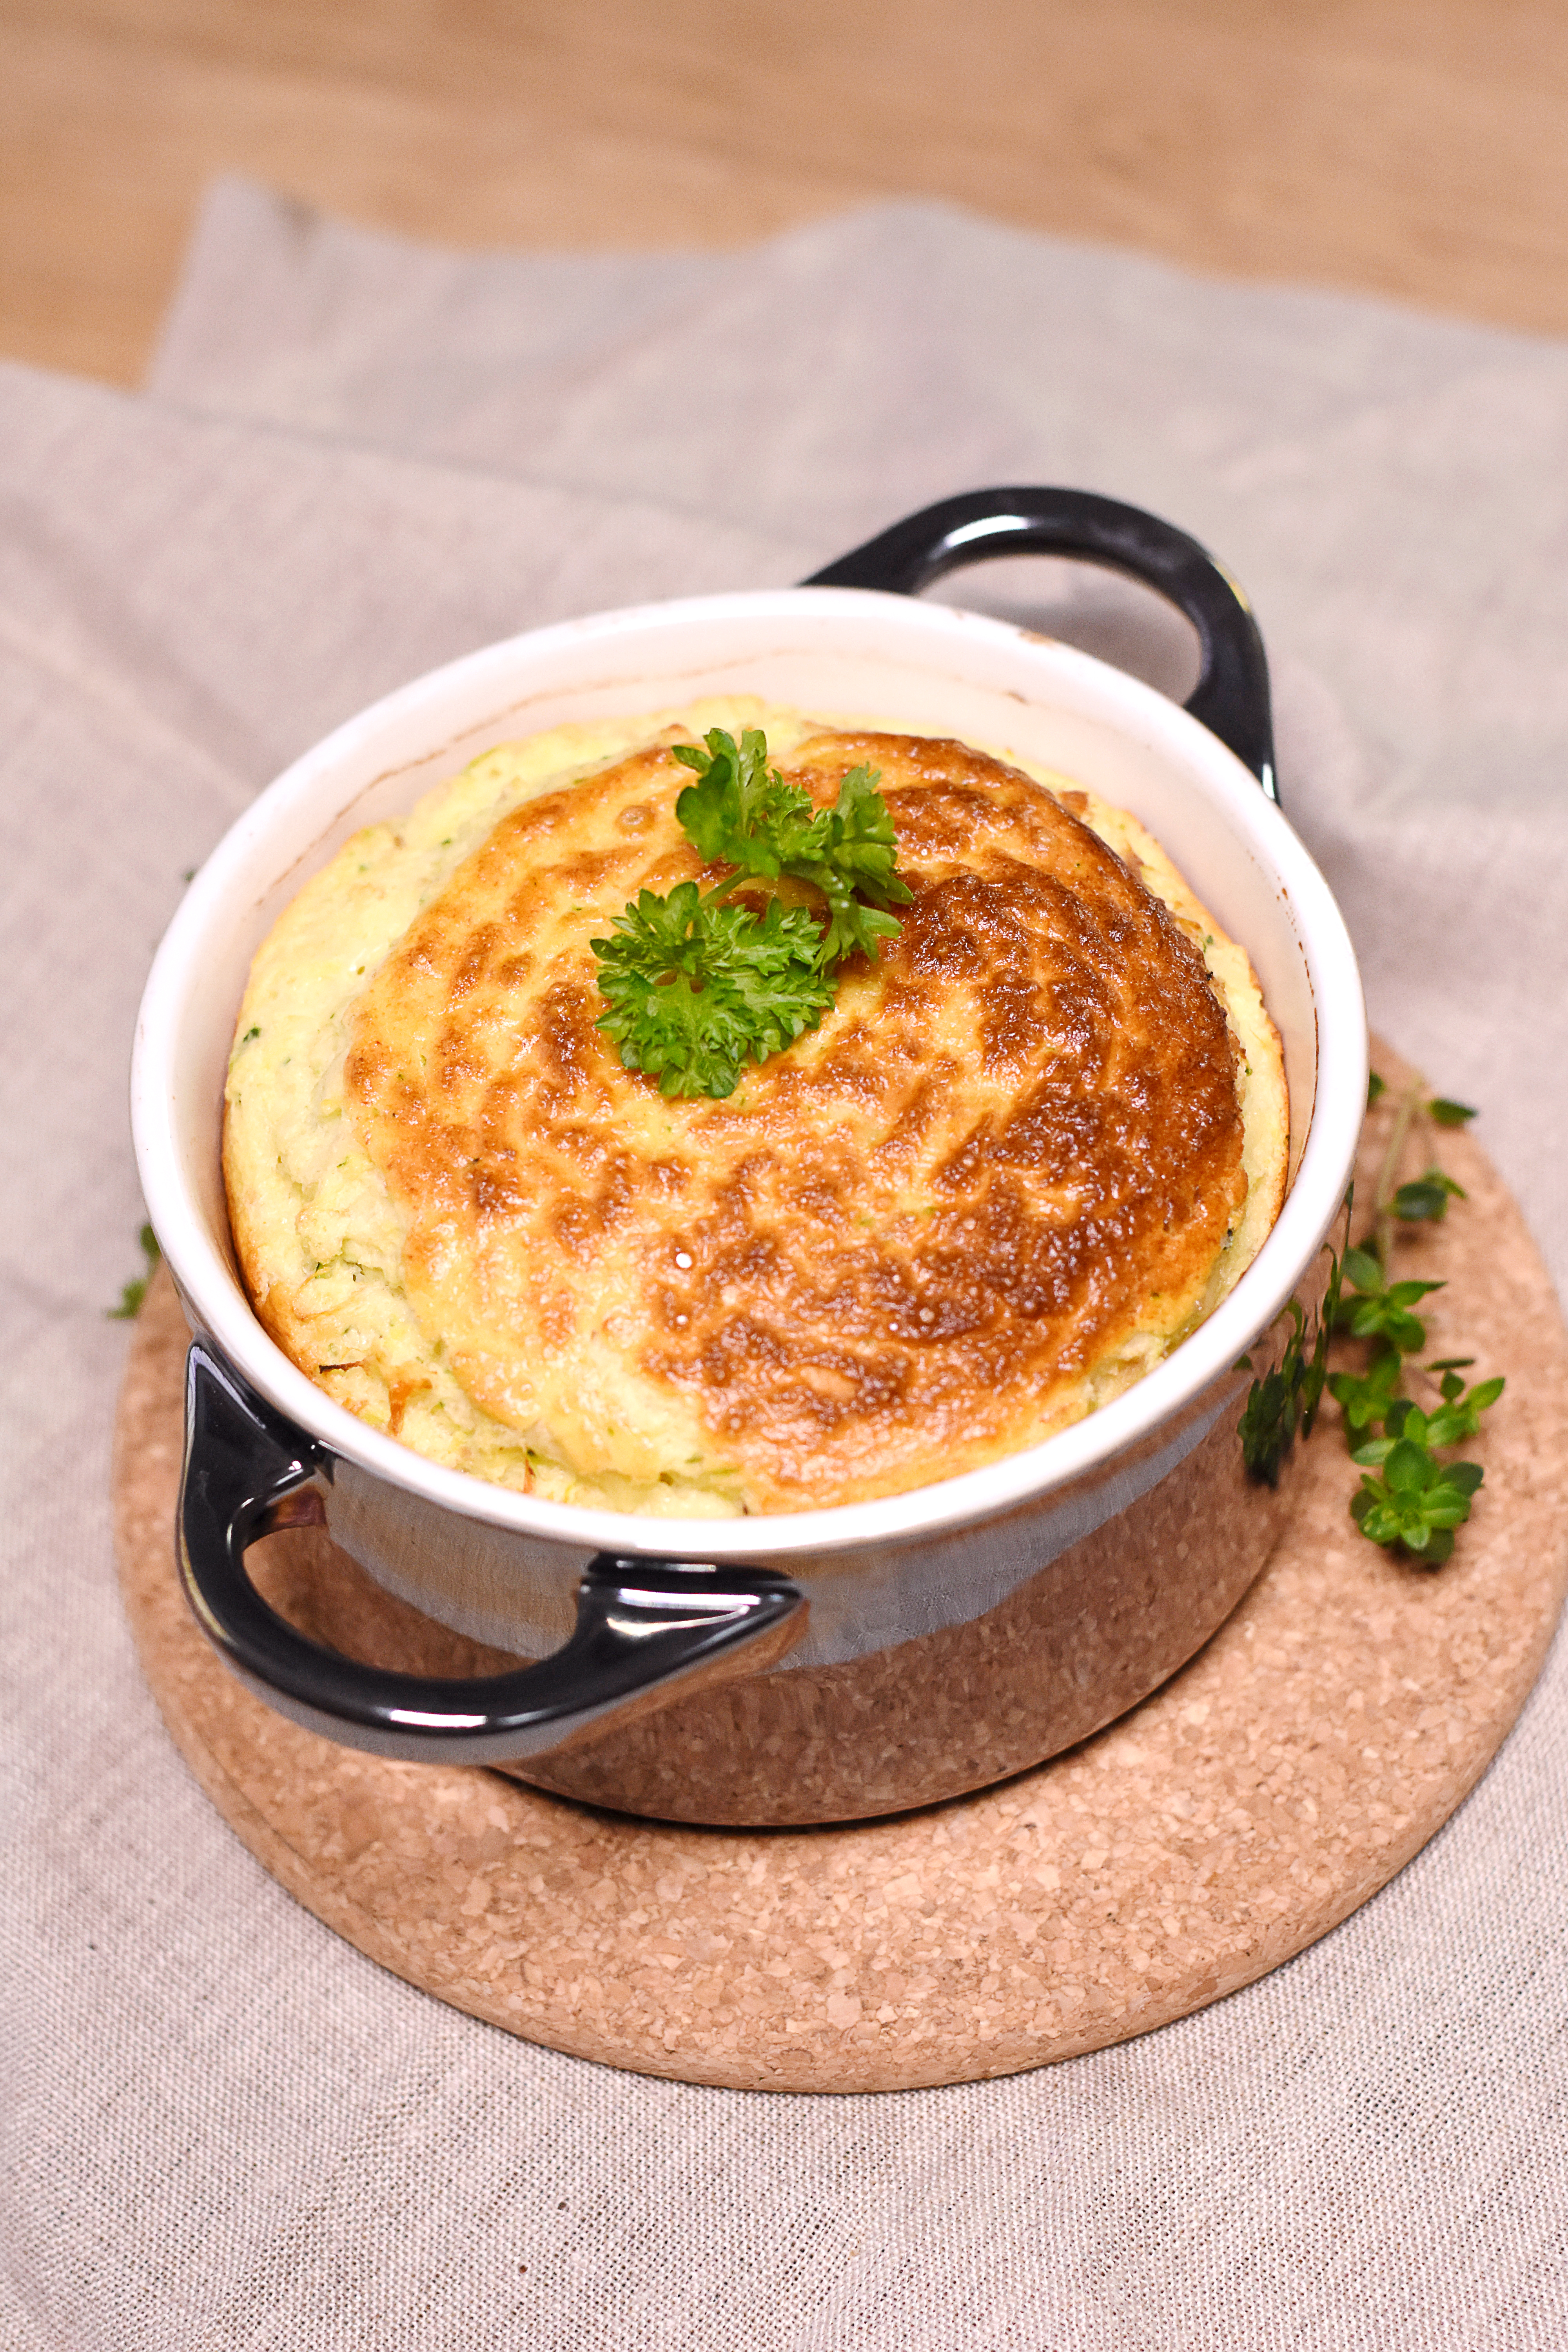 69641_souffle_fromage_marmiton_2.jpg